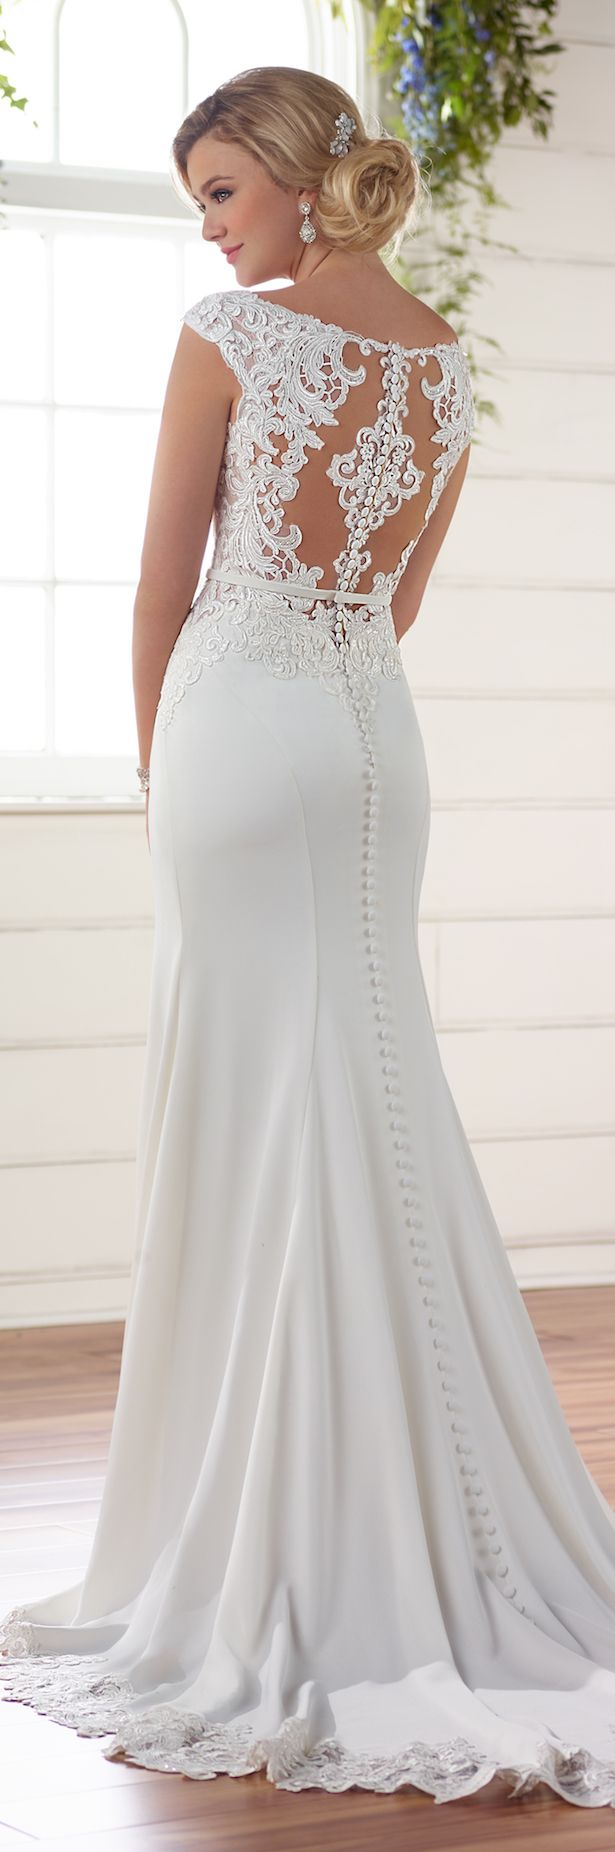 romantic wedding dresses wedding dress Essense of Australia Spring Bridal Collection Wedding Gowns